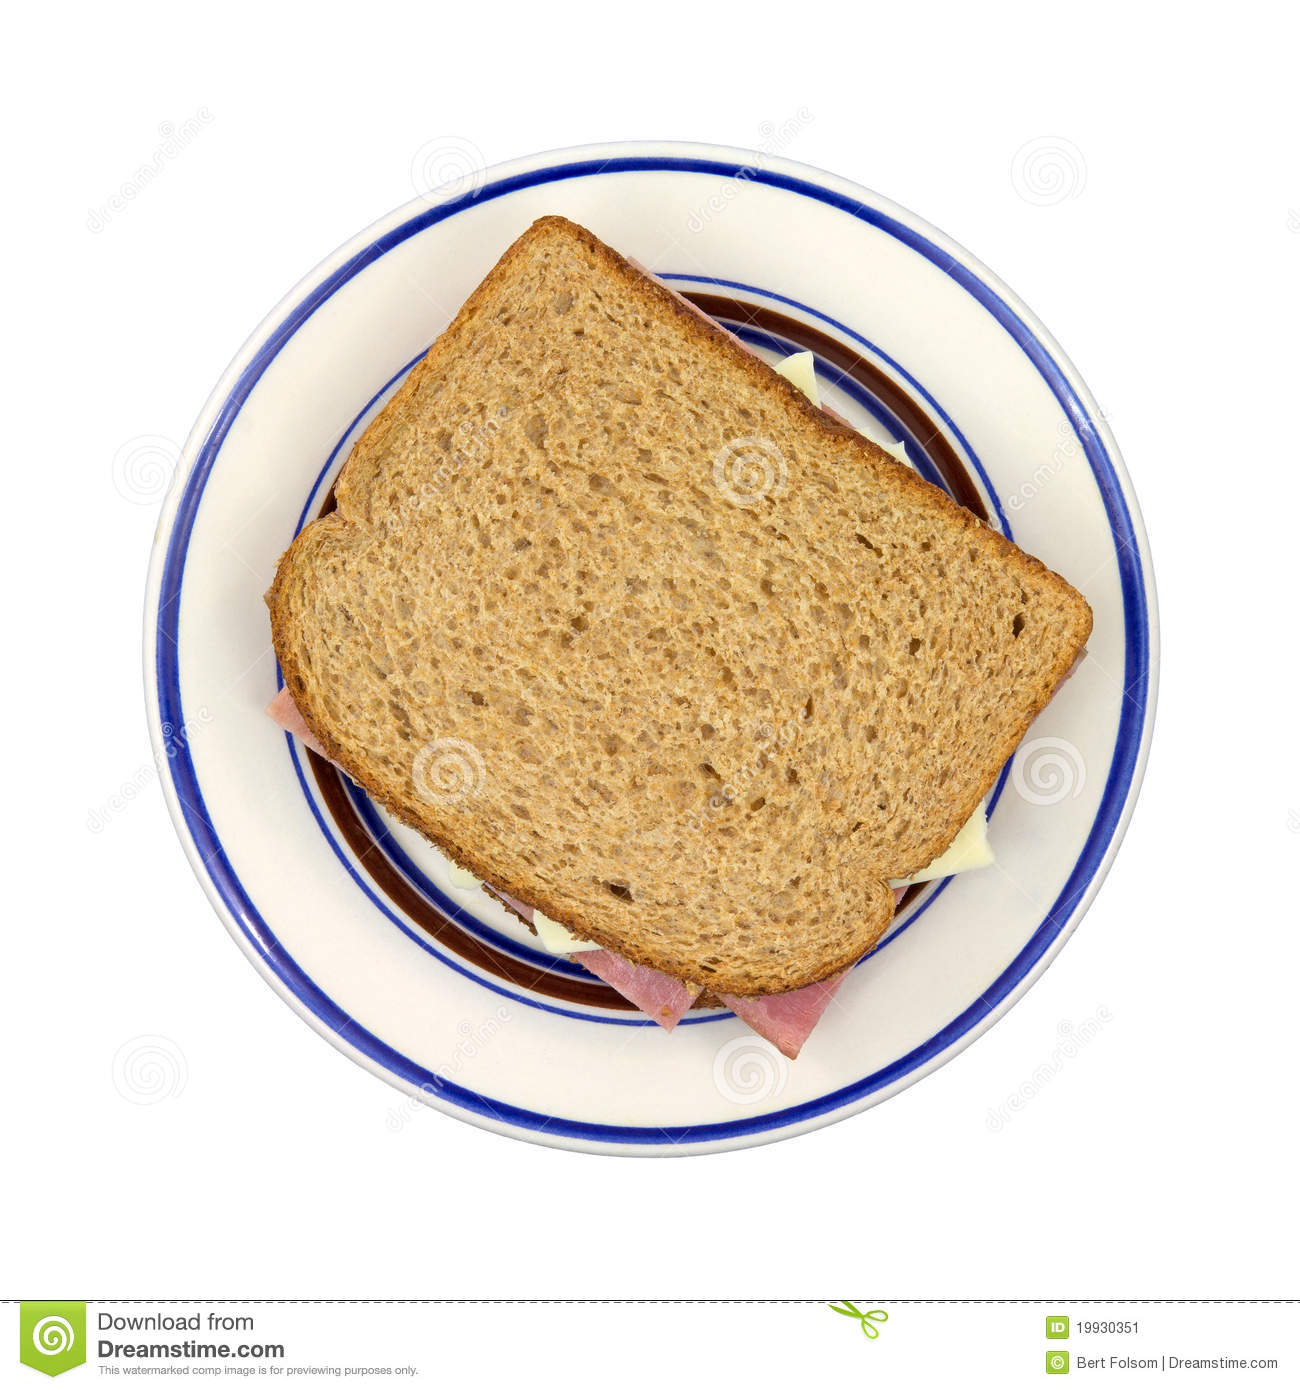 Turkey Ham And Cheese Sandwich On Plate Stock Image ...